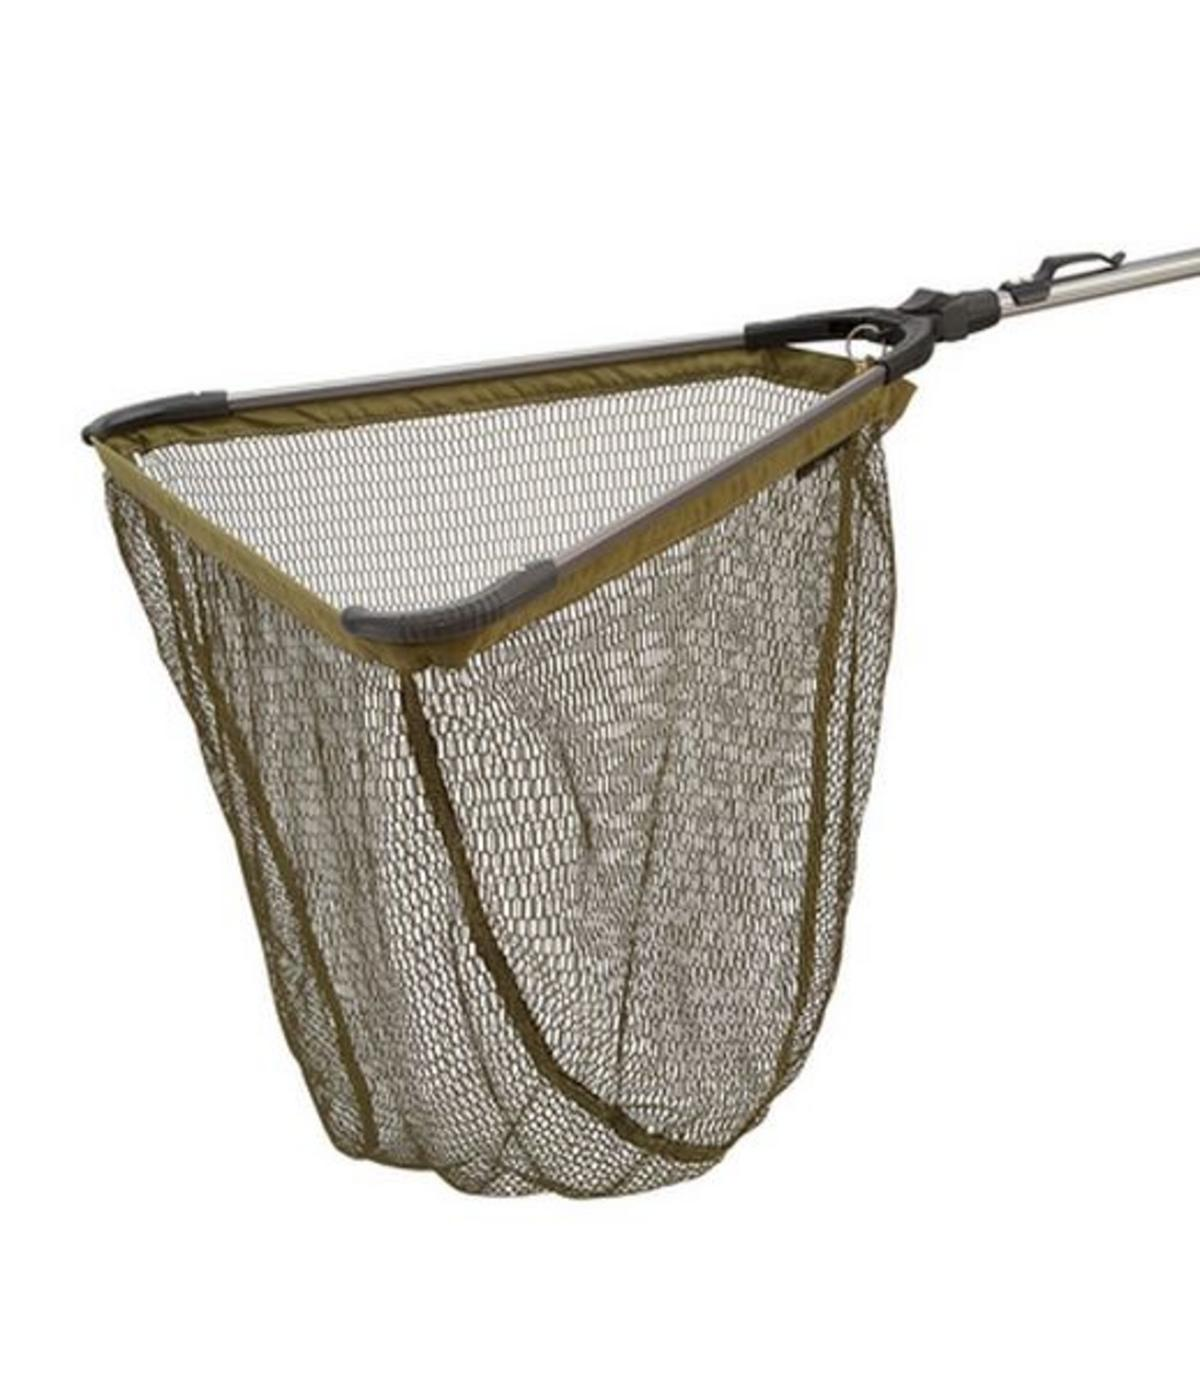 NEW DAIWA TROUT FISHING FOLDING TELESCOPIC LANDING NET 50CM DTN3